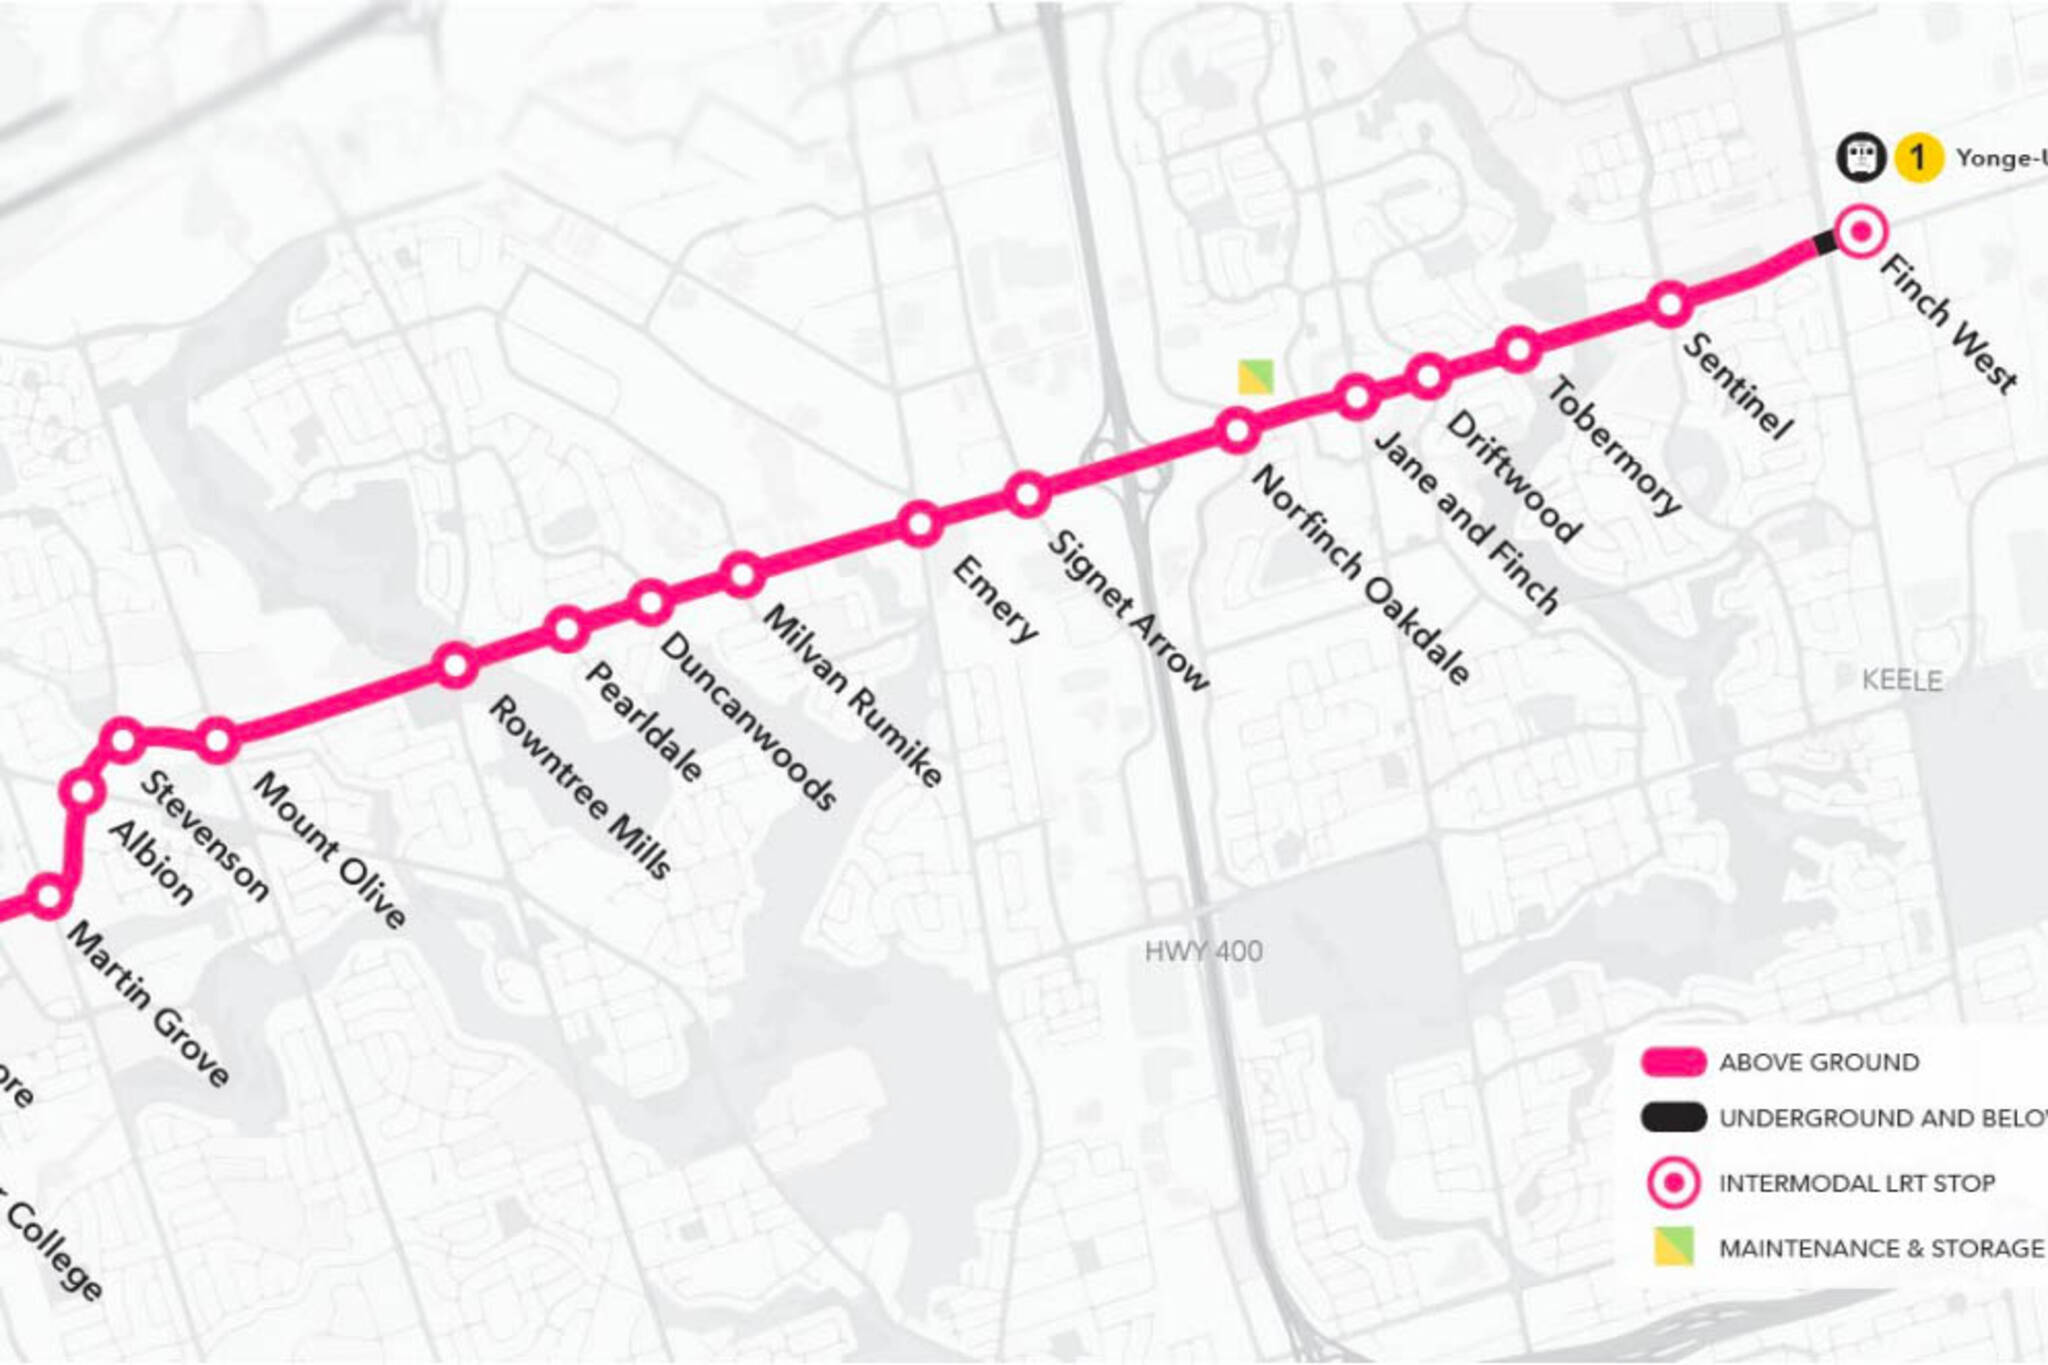 finch lrt station names